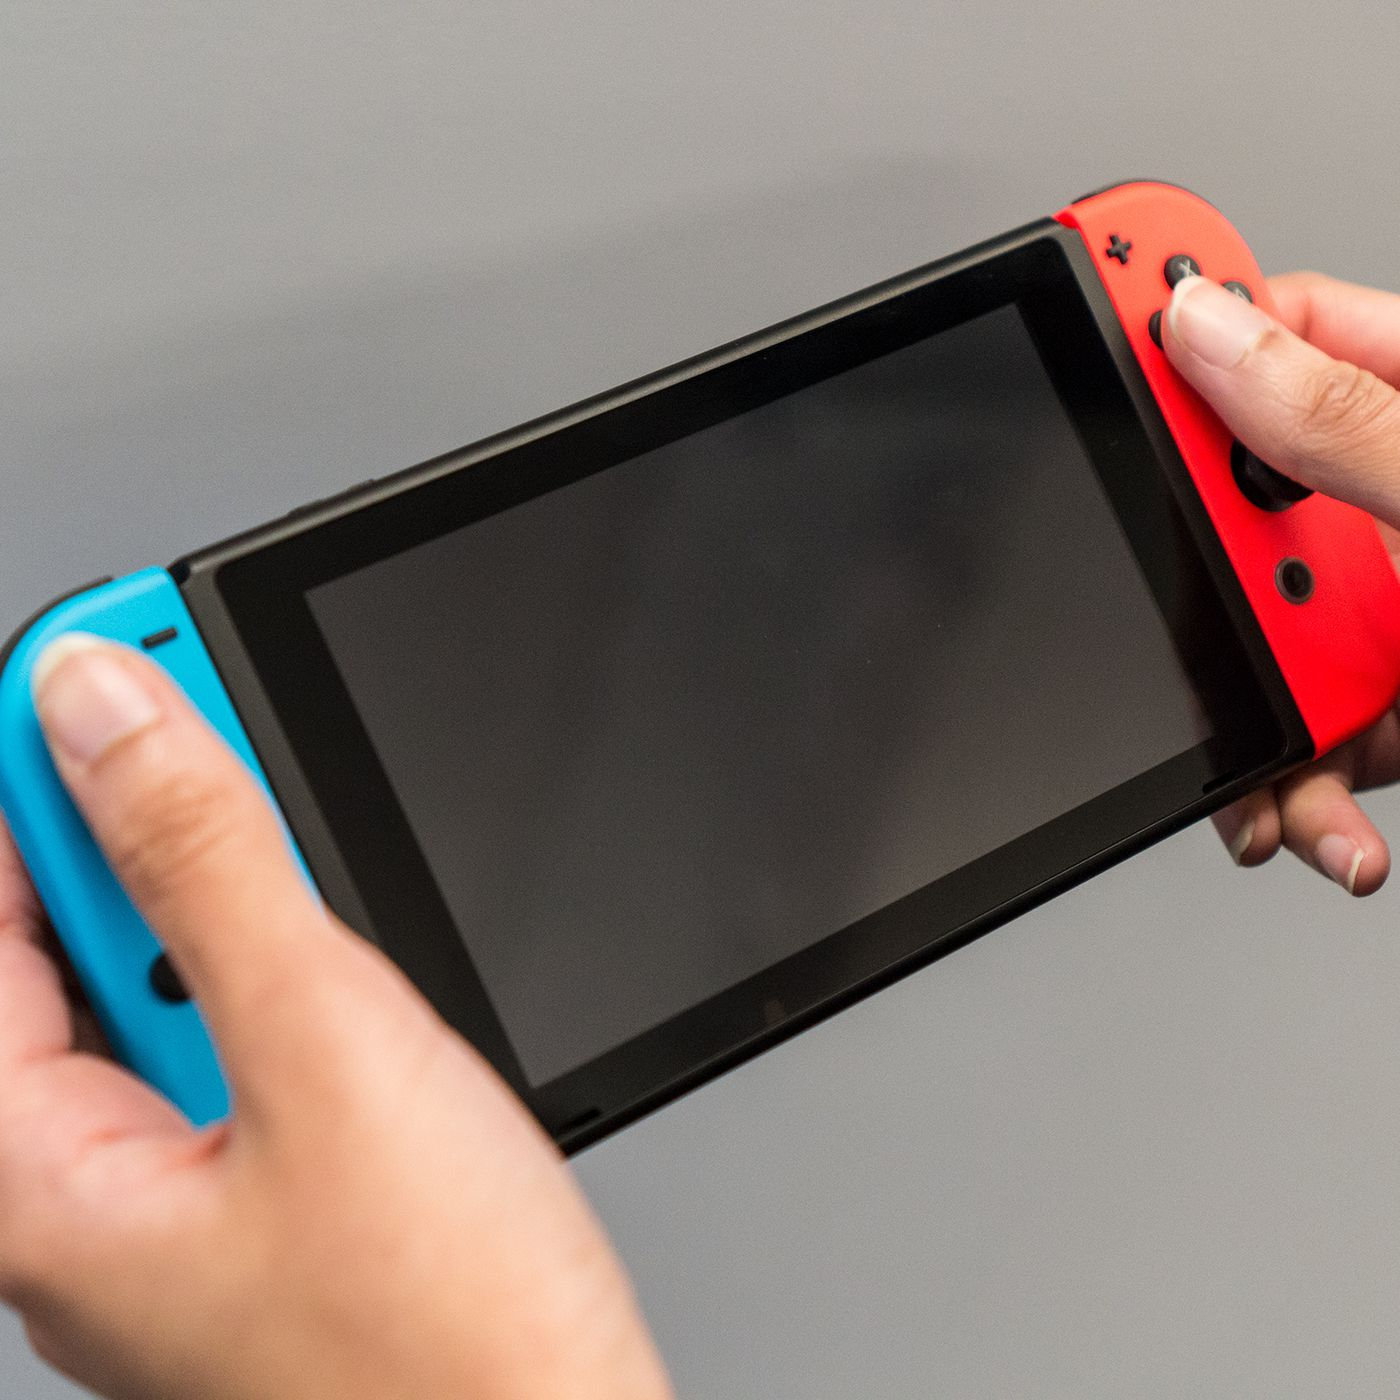 Nintendo Switch subreddit is the console's most supportive lost-and